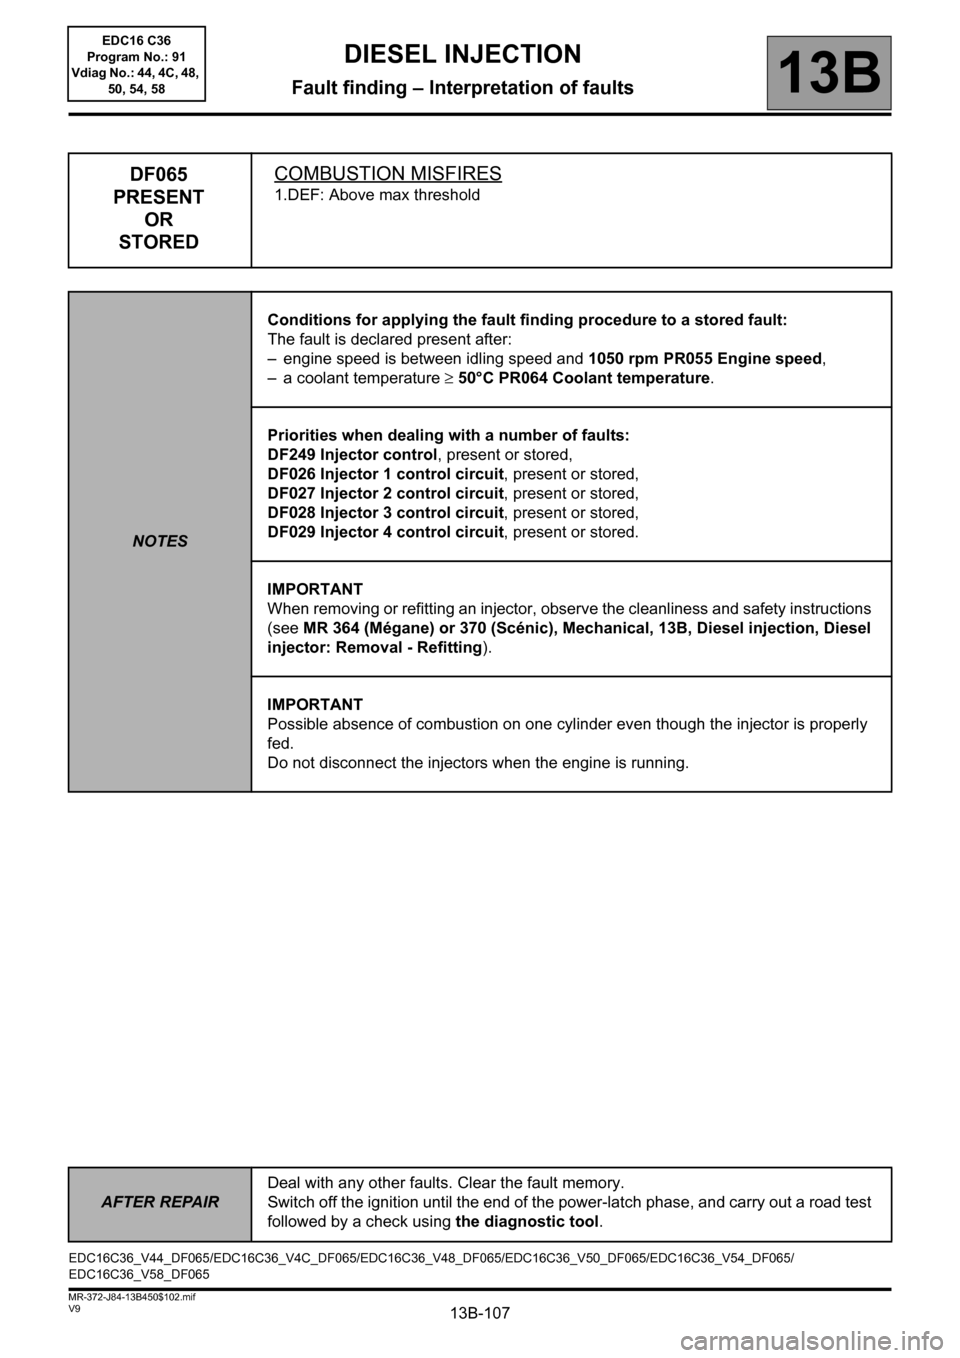 RENAULT SCENIC 2011 J95 / 3.G Engine And Peripherals EDC16C36 Workshop Manual, Page 107